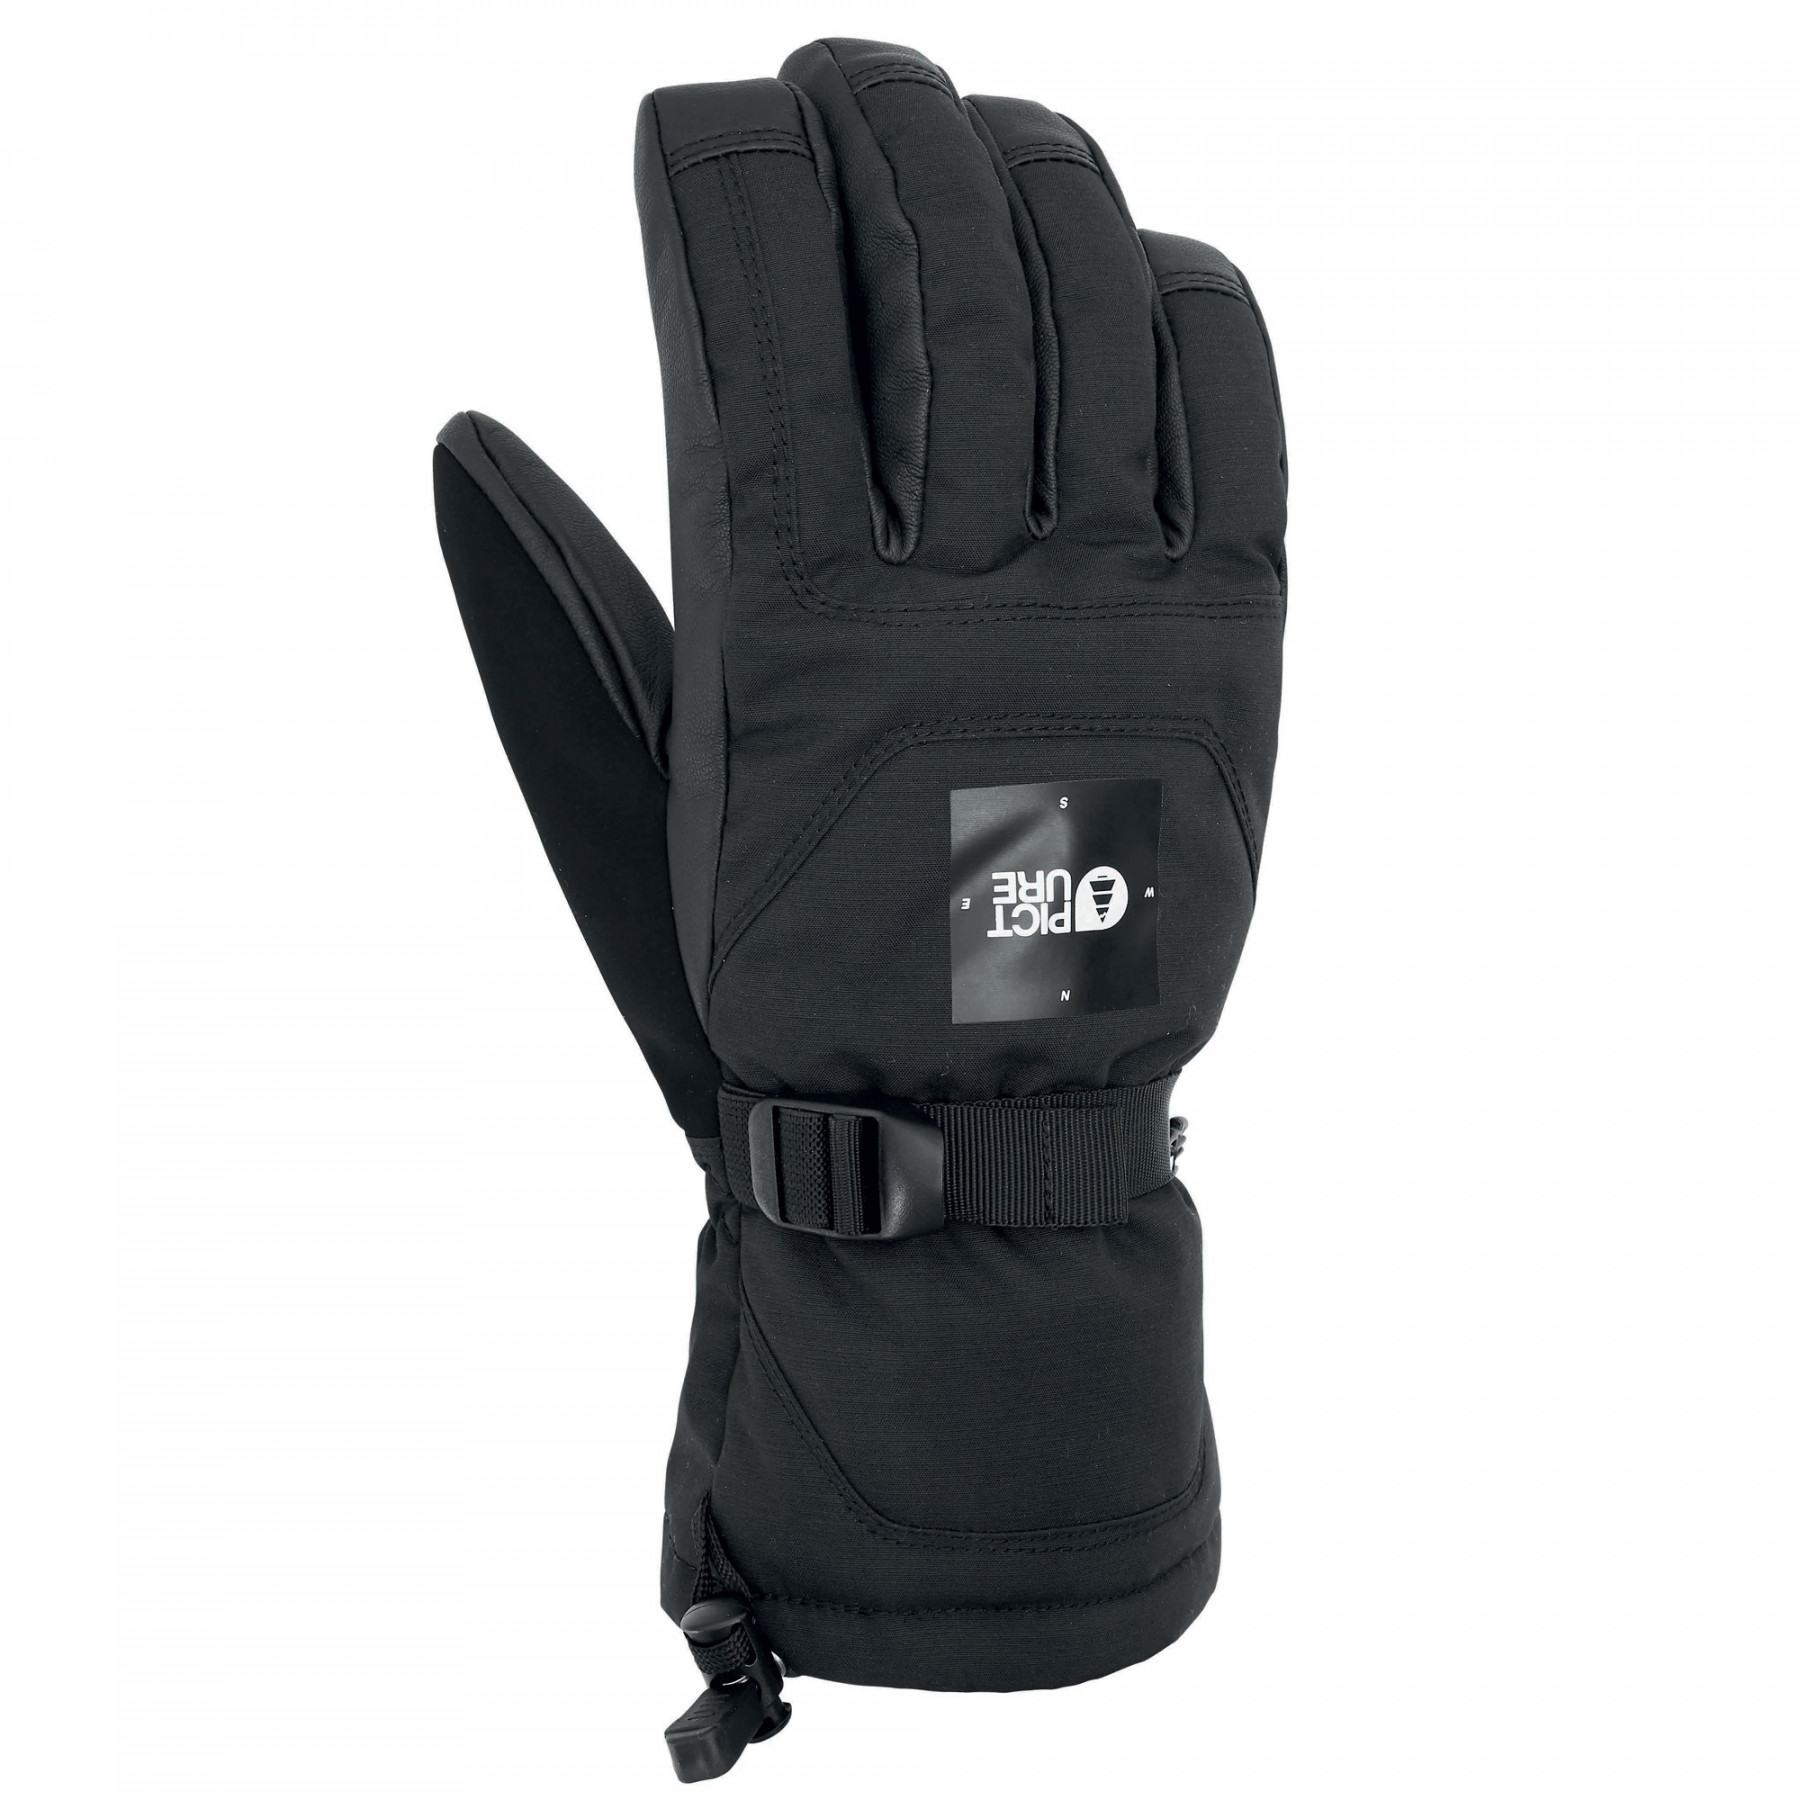 Gants de Ski Mankota - Black 0